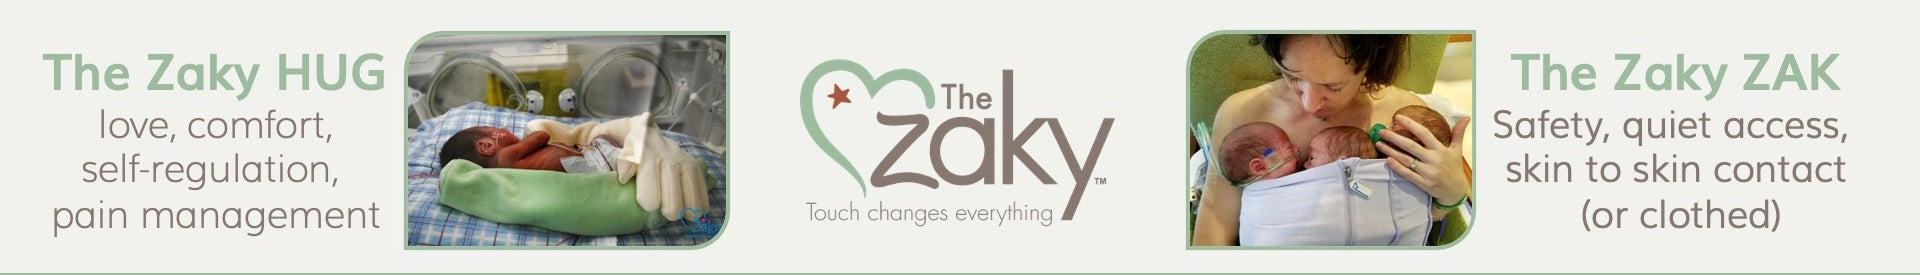 The Zaky Experience in NICUs